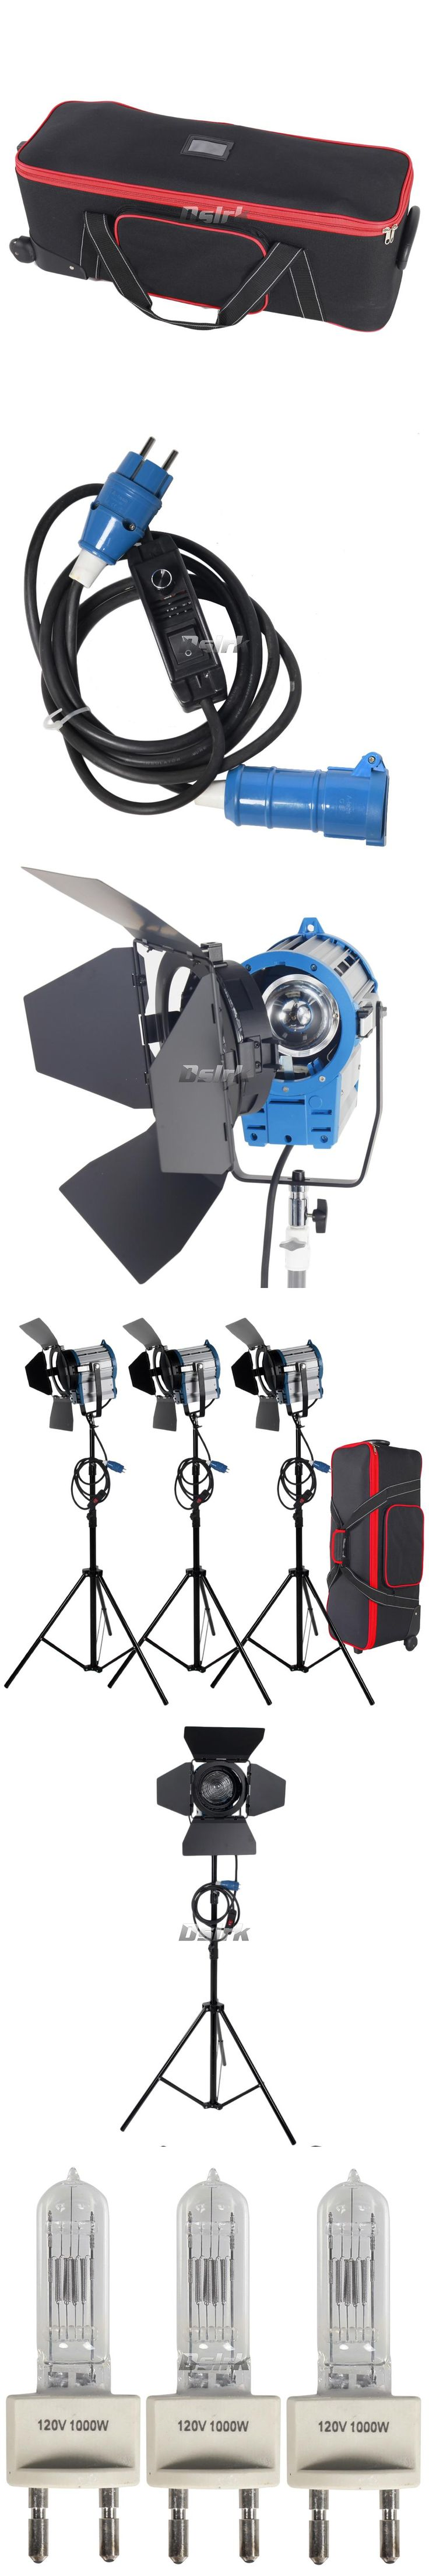 Free shipping 3 X 1000W Studio Fresnel Tungsten with dimmer control Spotlight Video Light Kit Lighting with Carry Case